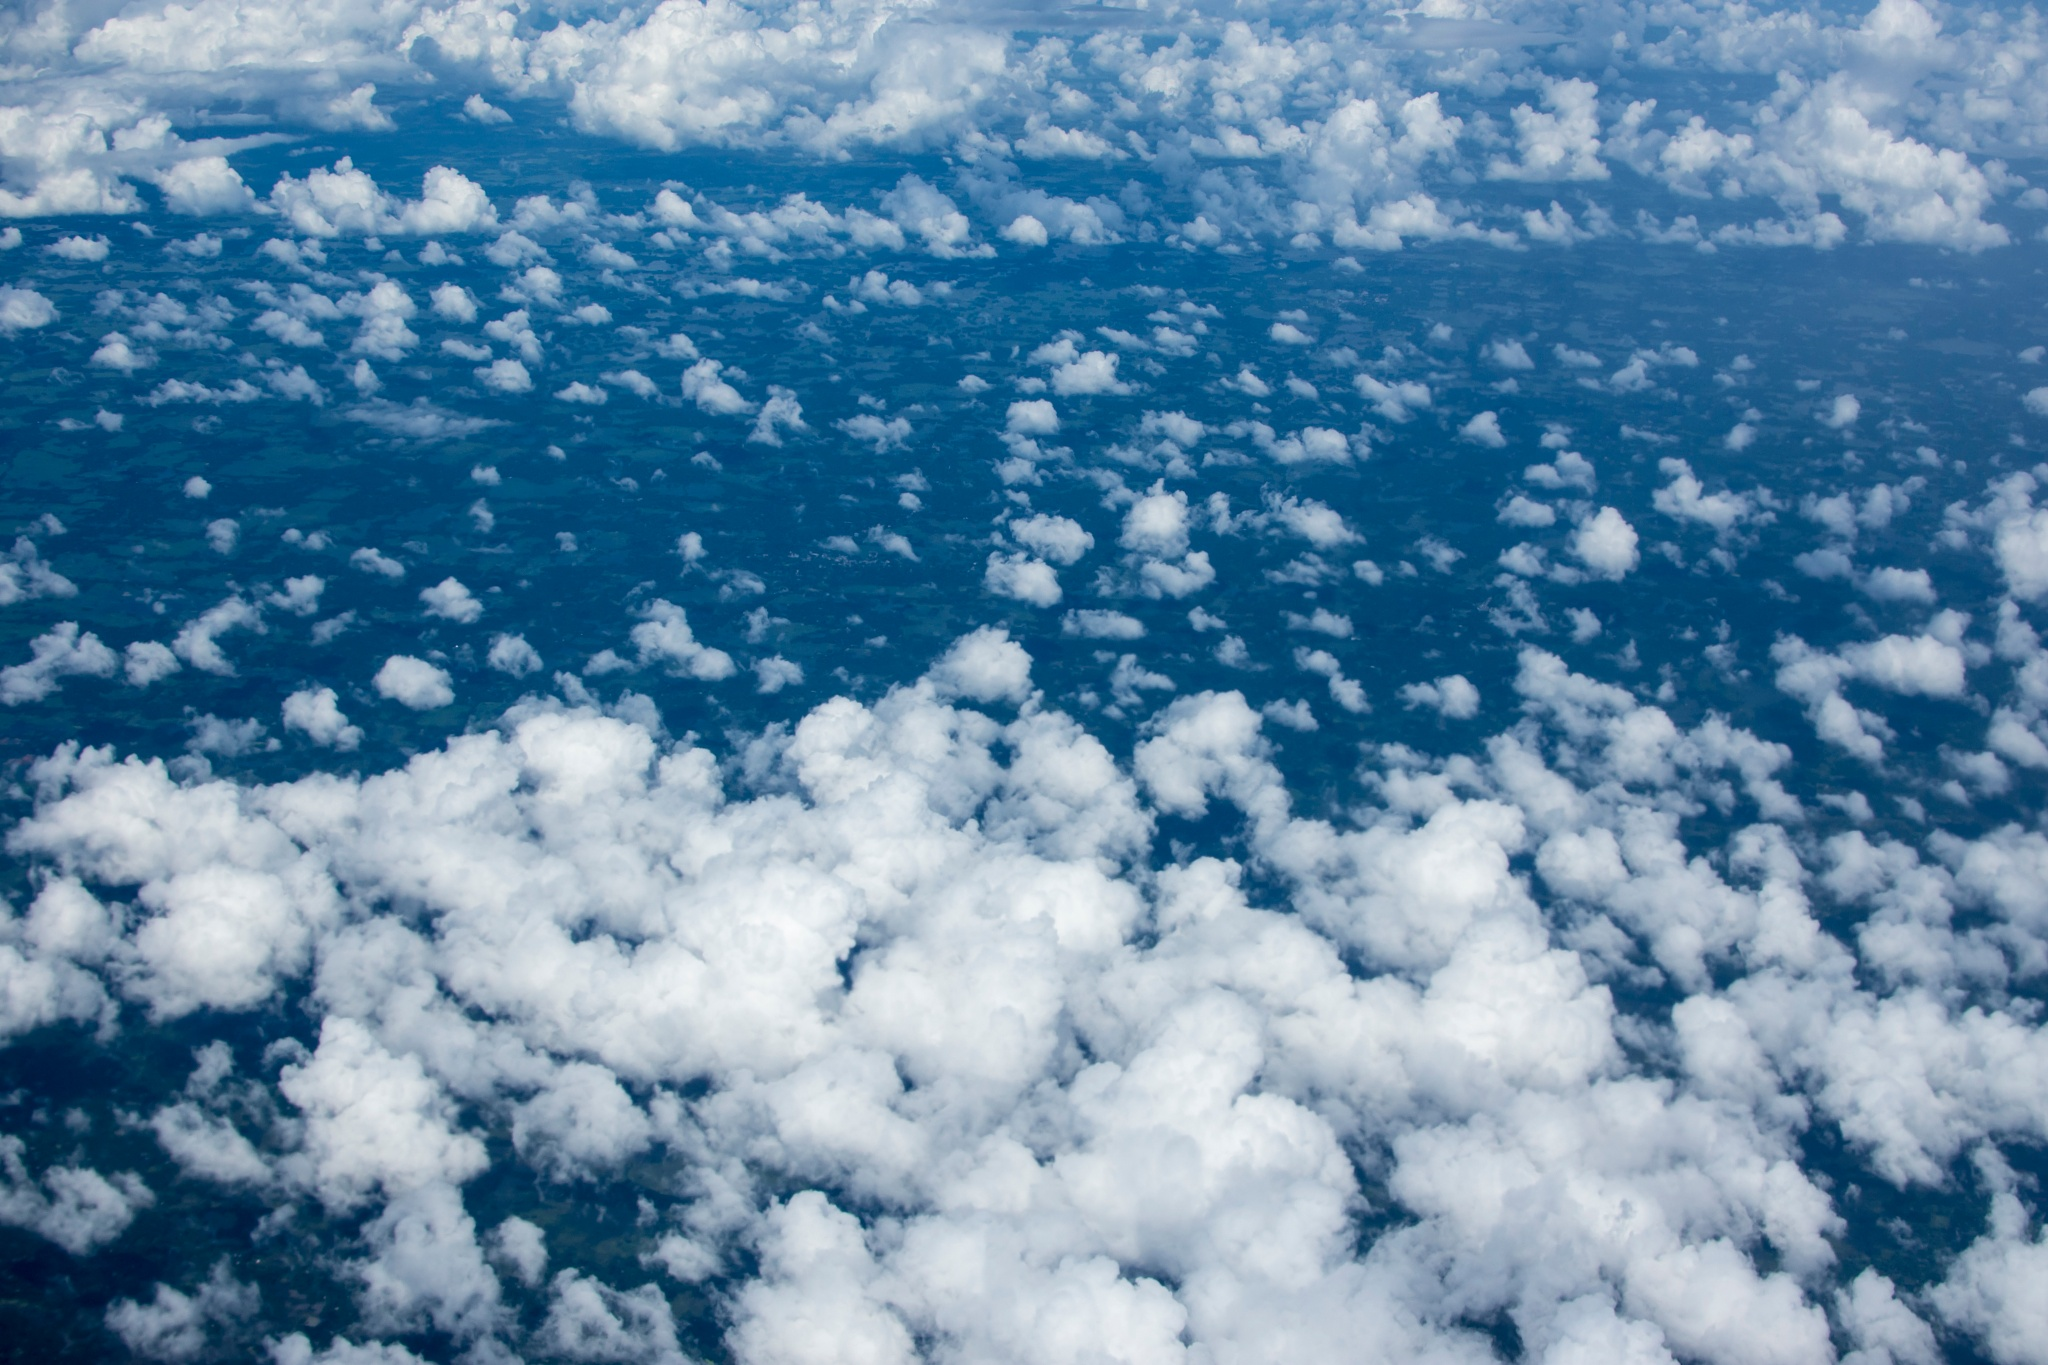 Kingdom of Cloud by Md Golam Murshed